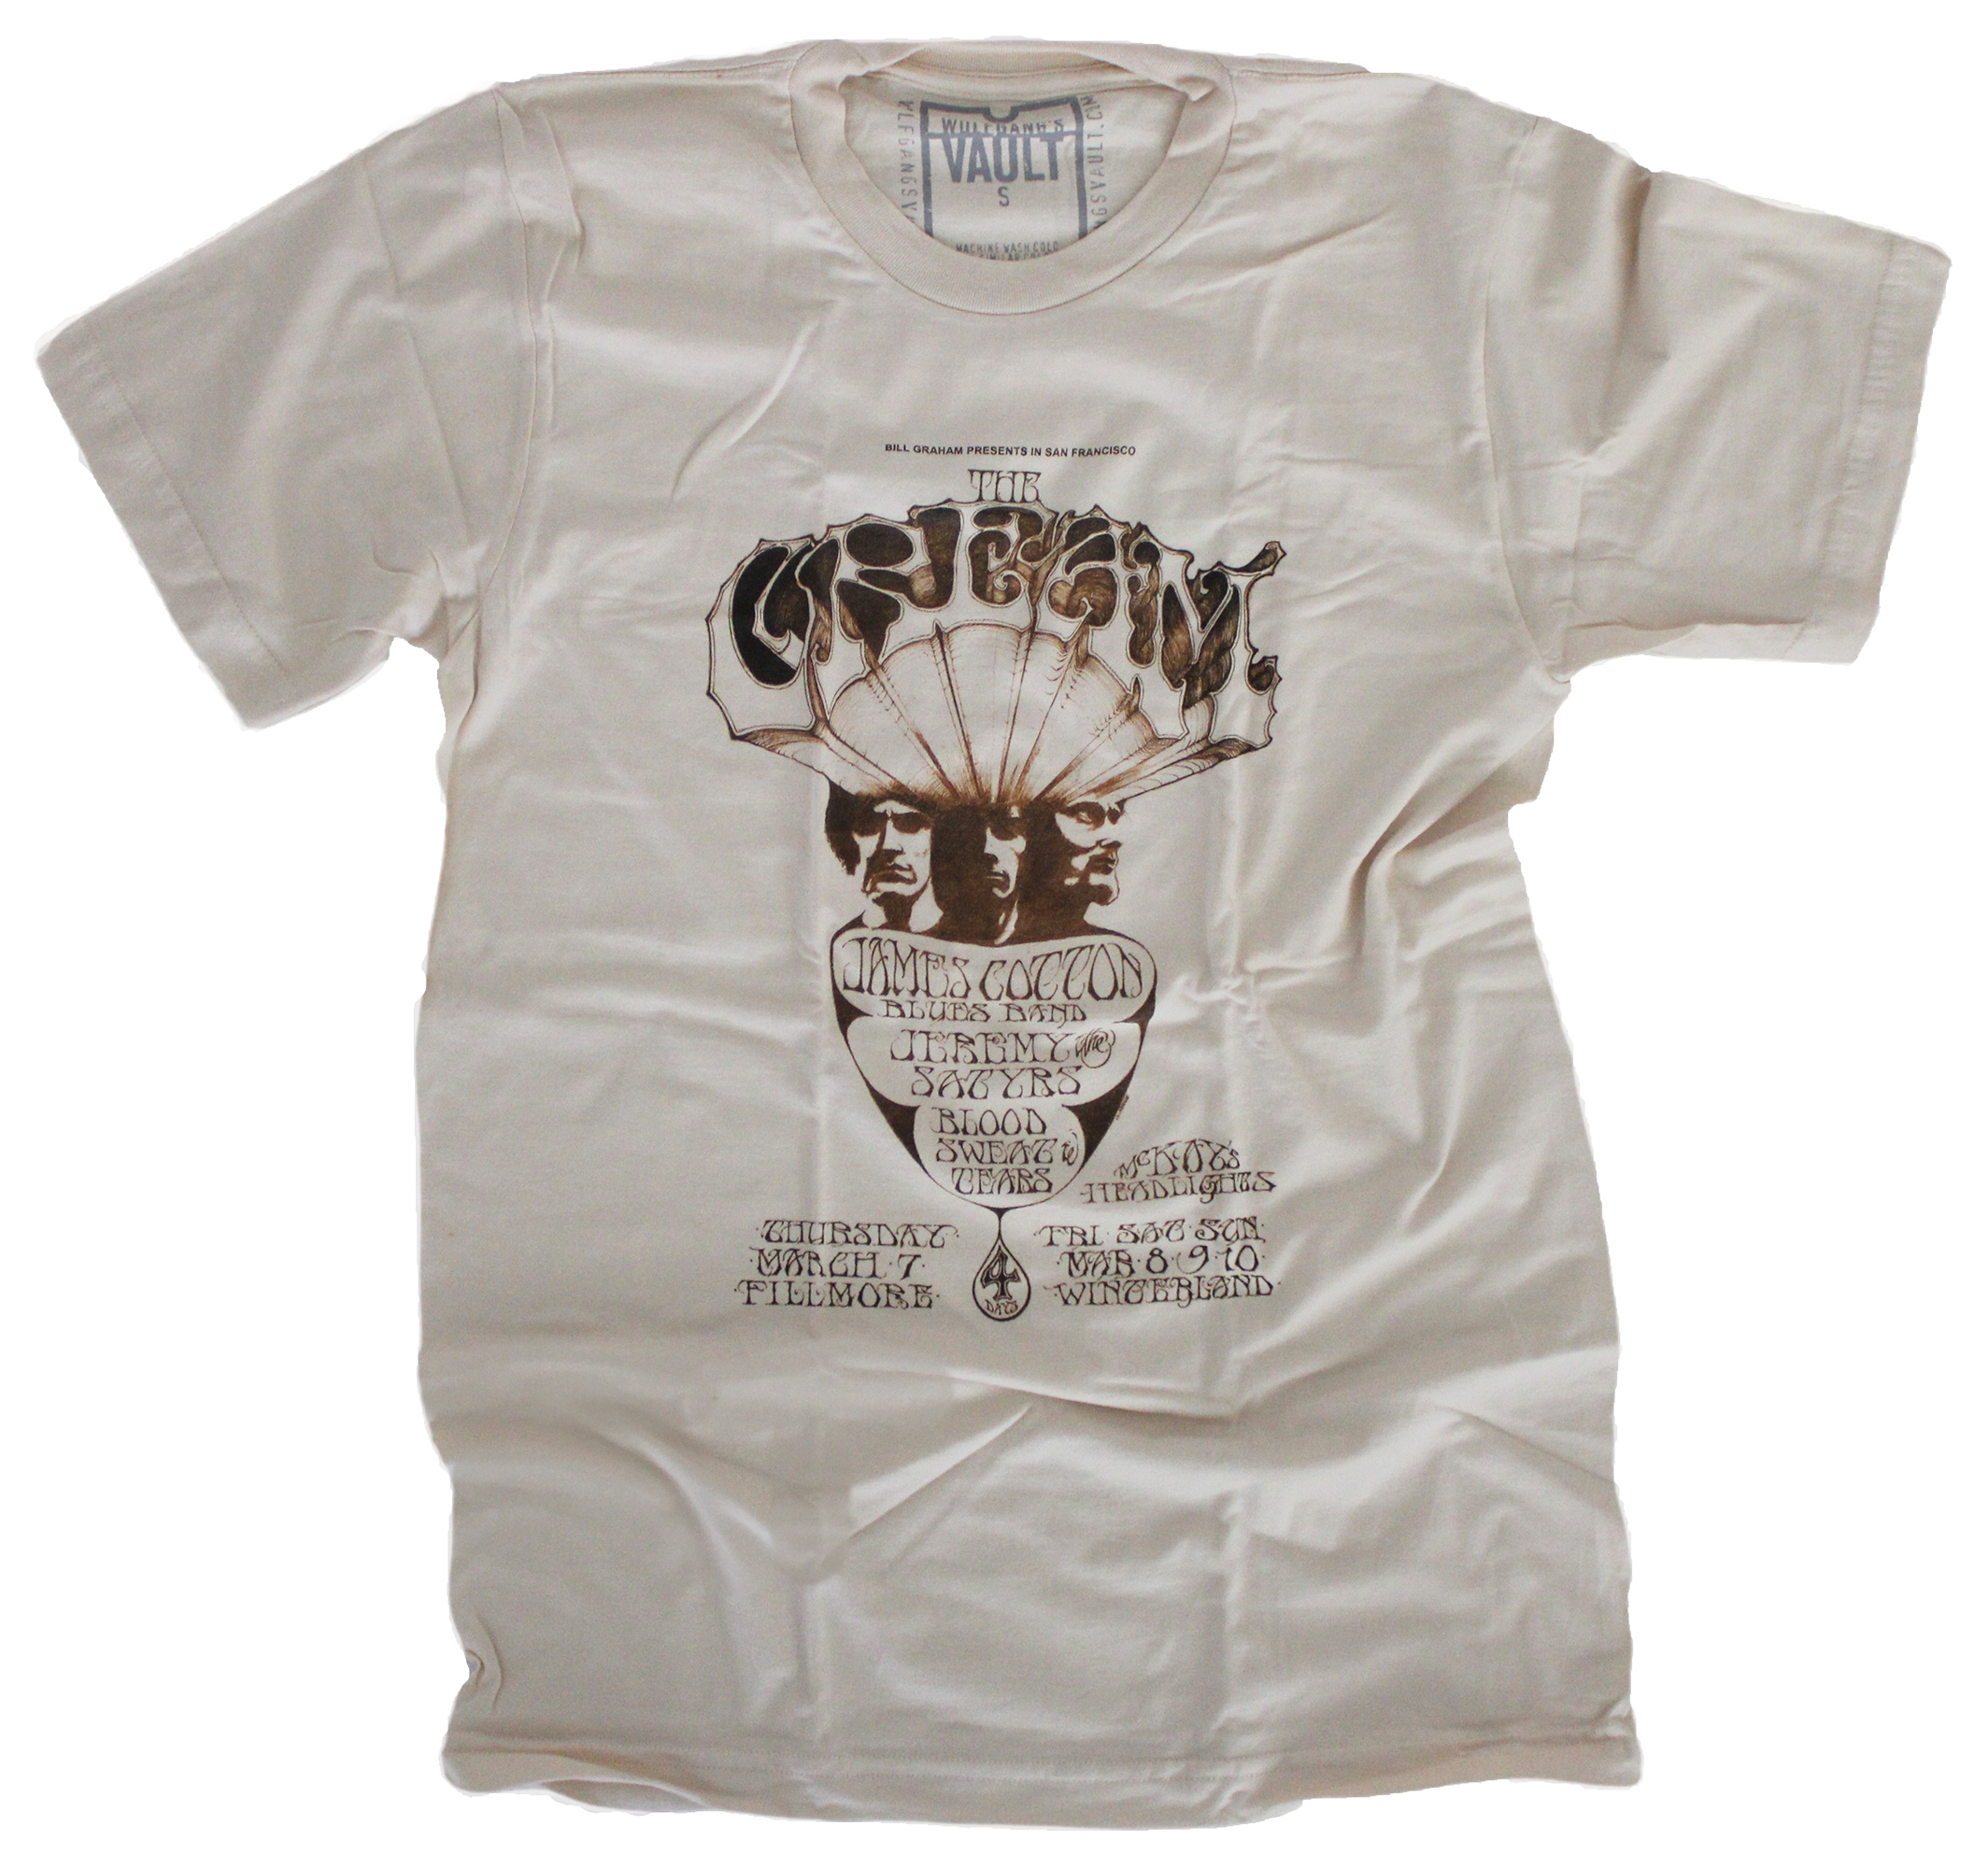 Cream Men's Retro T-Shirt from Fillmore Auditorium on 07 Mar 68: Small